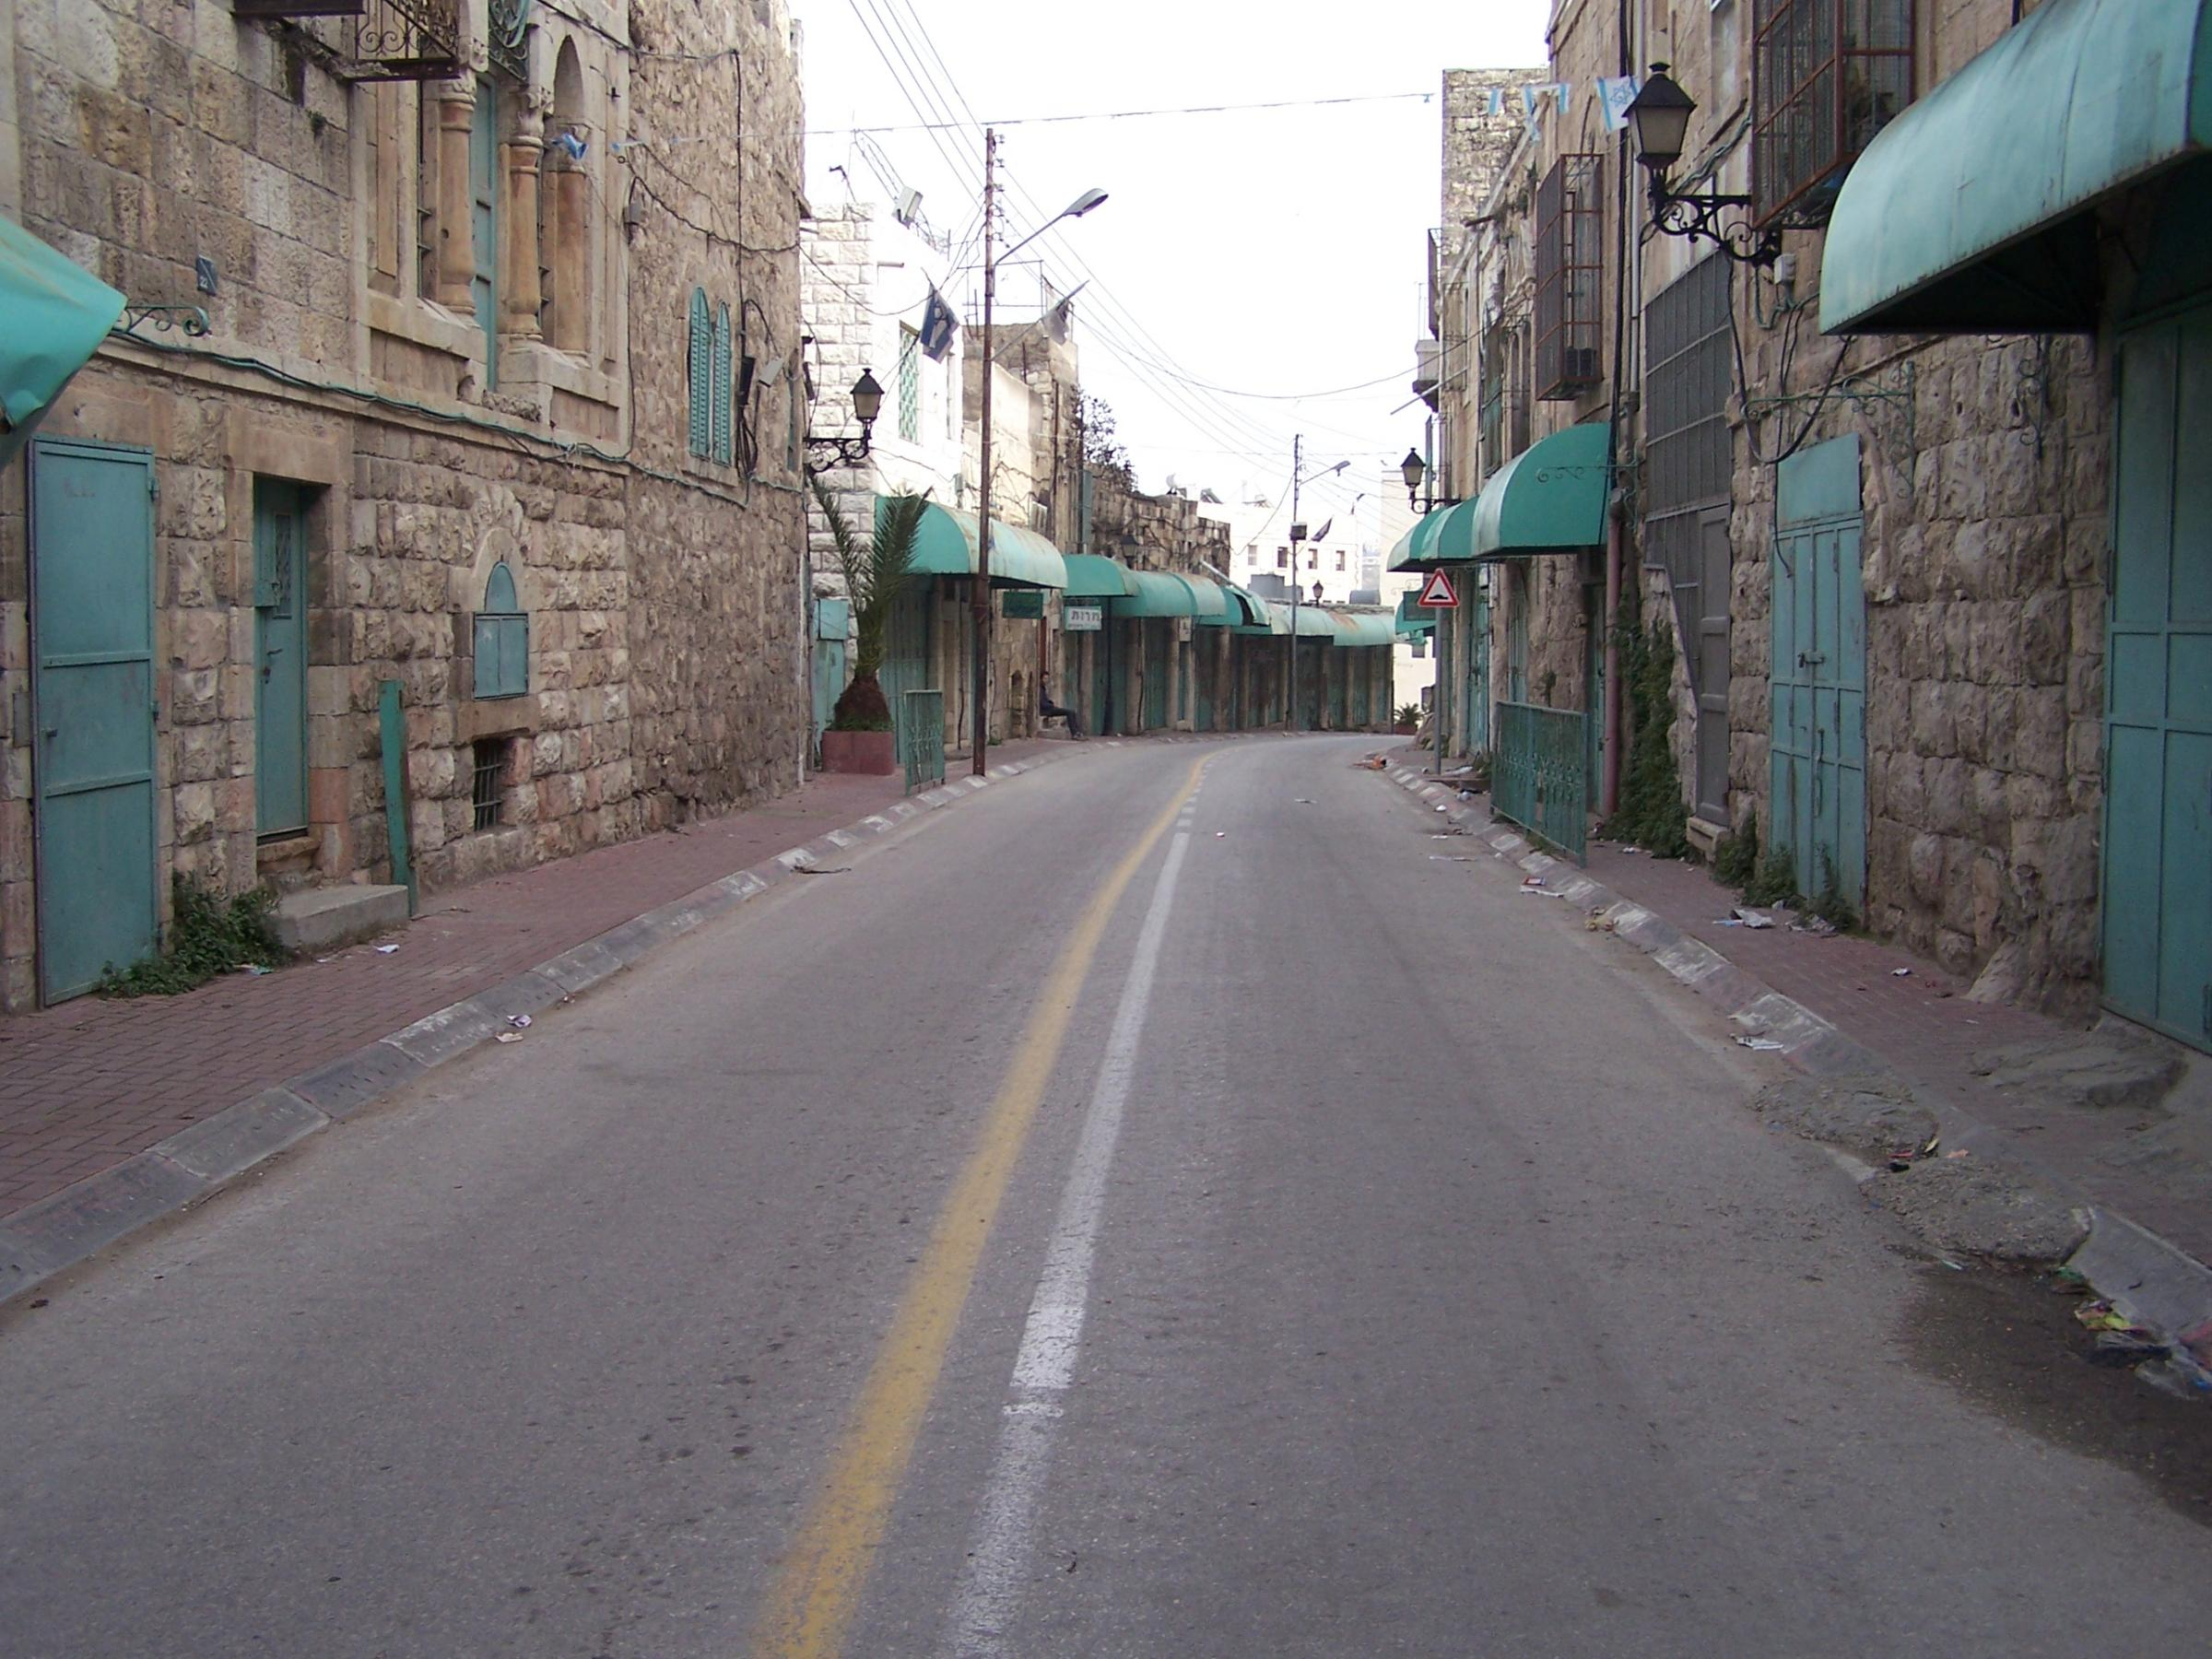 Hebron - الخليل : A curfew imposed on the city by the Israeli occupation force